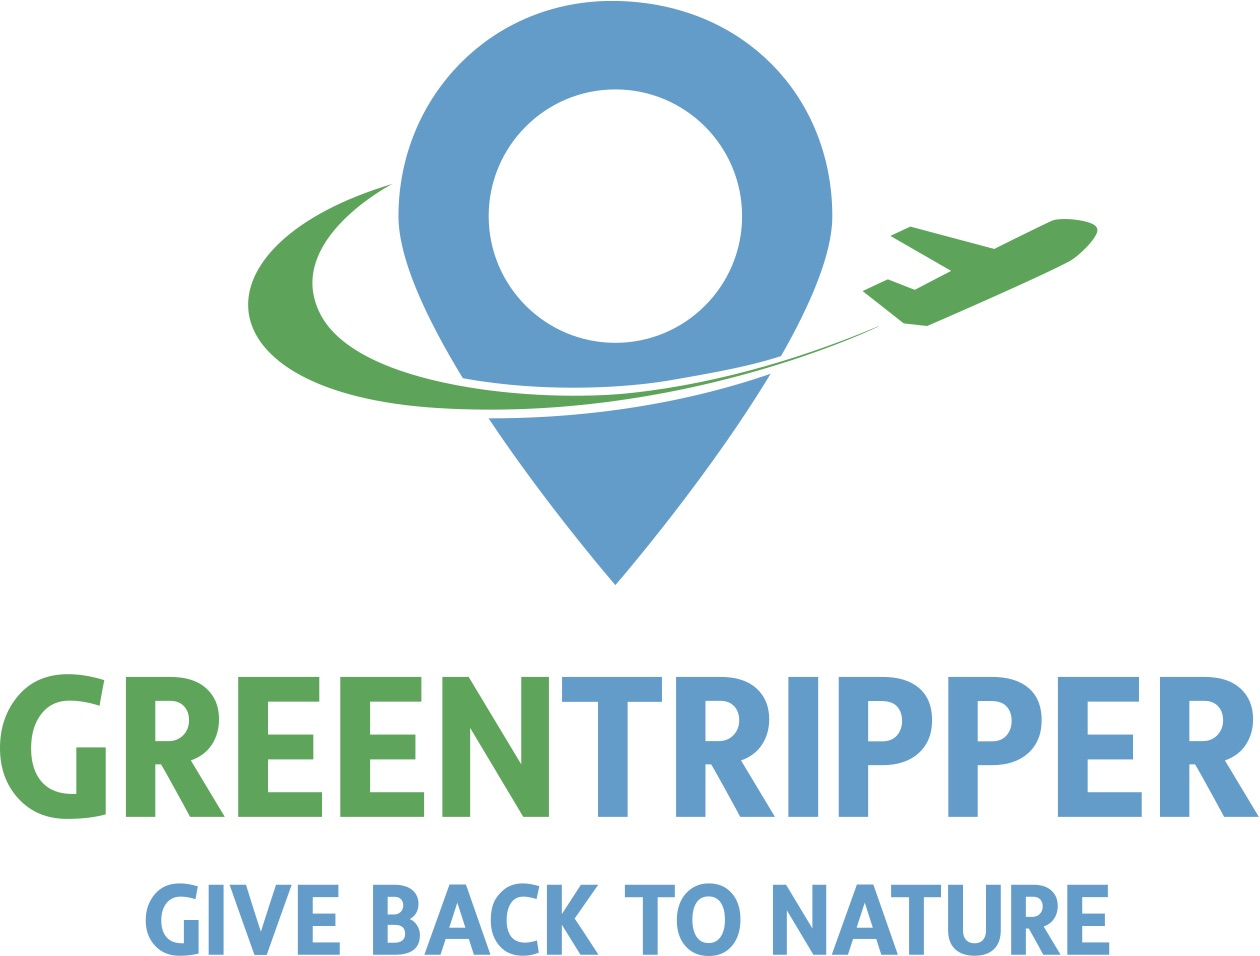 Greentripper